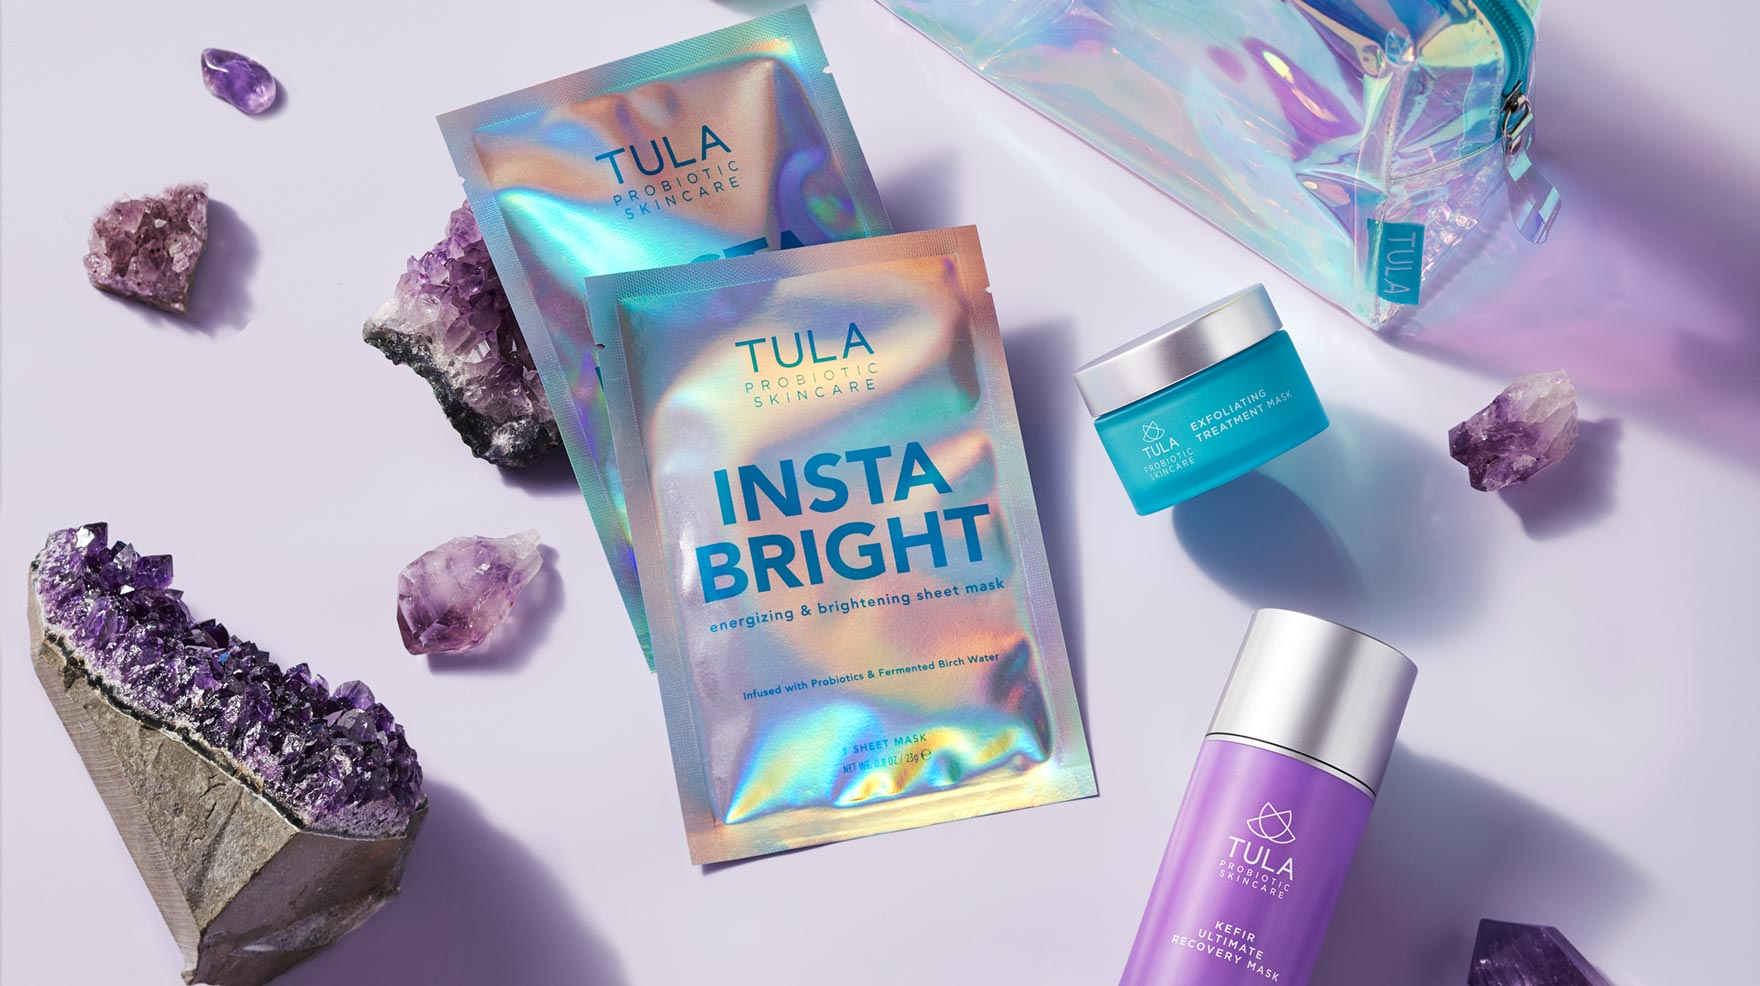 tula skincare holiday kit - mask kit - how to use